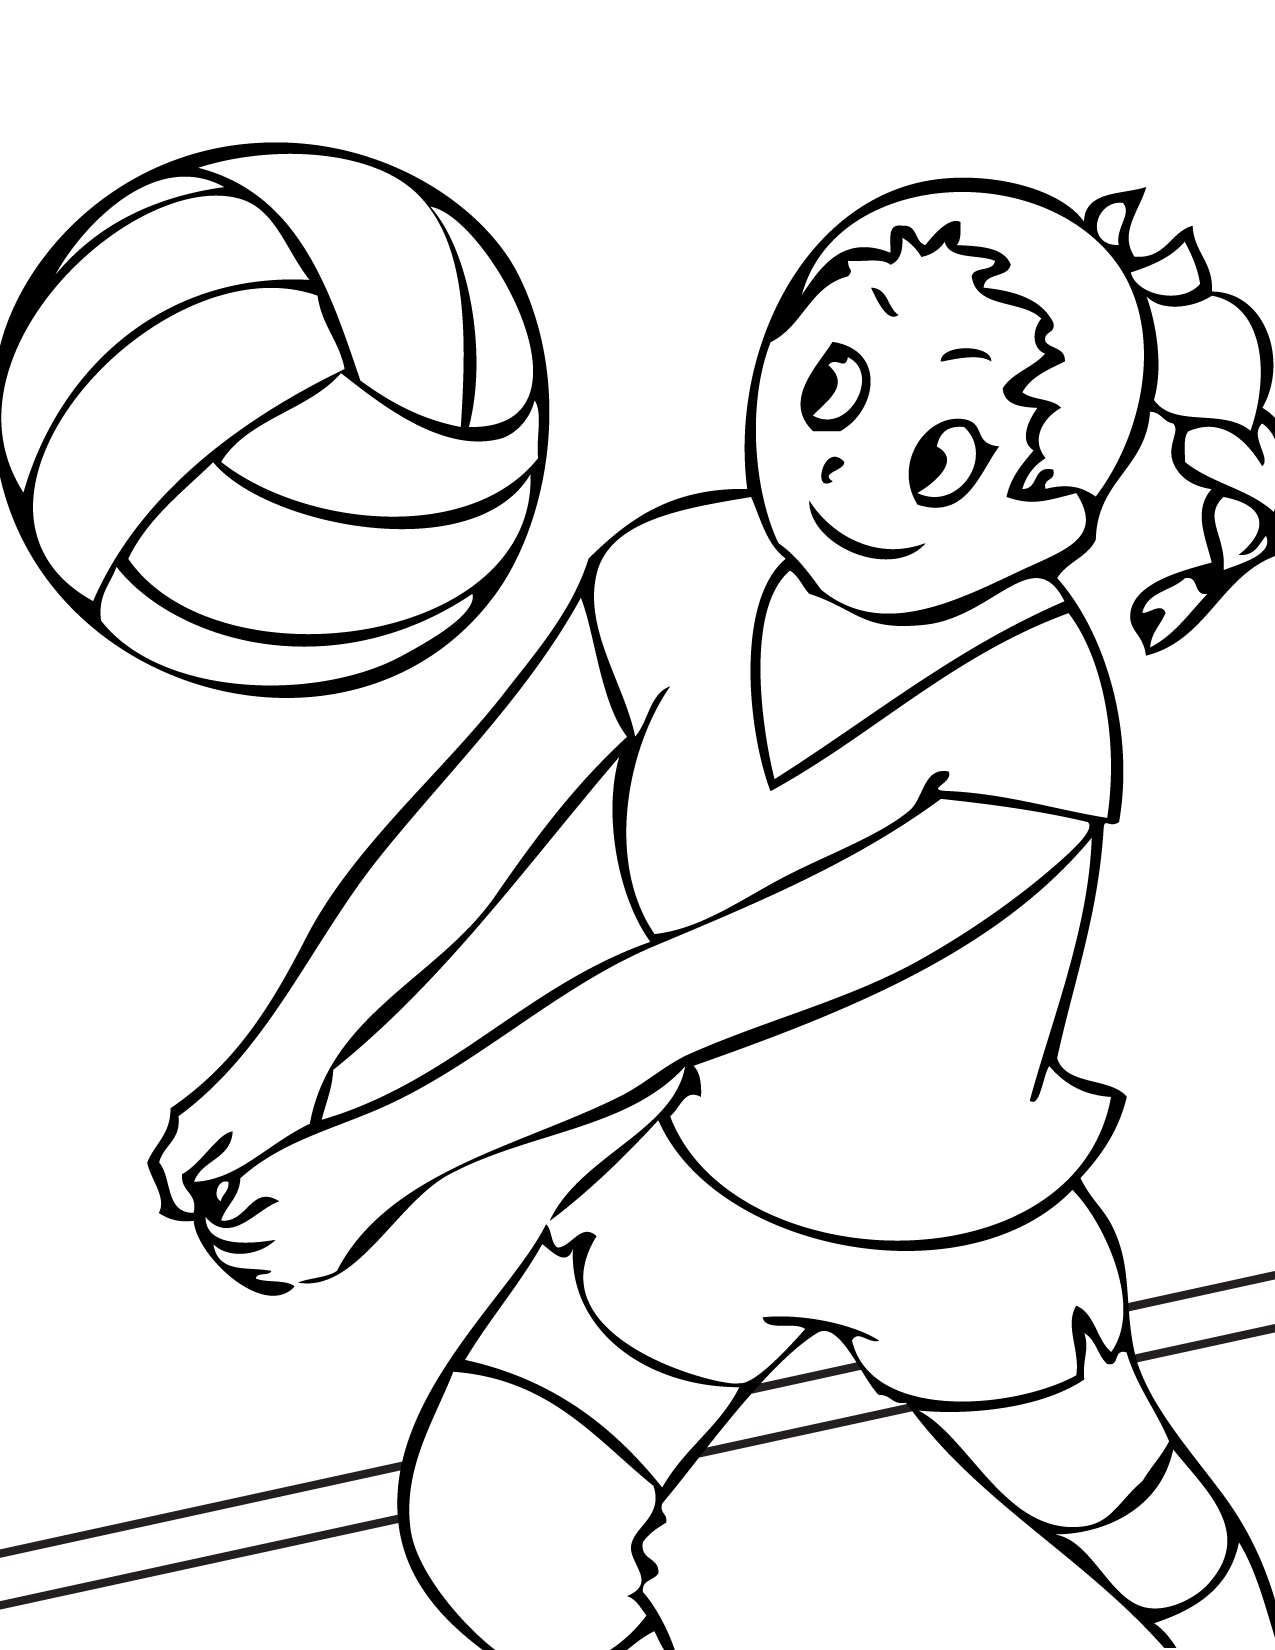 besides  likewise Ball coloring pages  baseball soccer football together with Free Printable Sports Coloring Pages furthermore Sport Cars Coloring Pages besides 8izABp8ip in addition  furthermore Coloring Pages of Sports furthermore Volleyball Coloring Page together with sport coloring pages in addition . on free printable sports coloring pages for kids